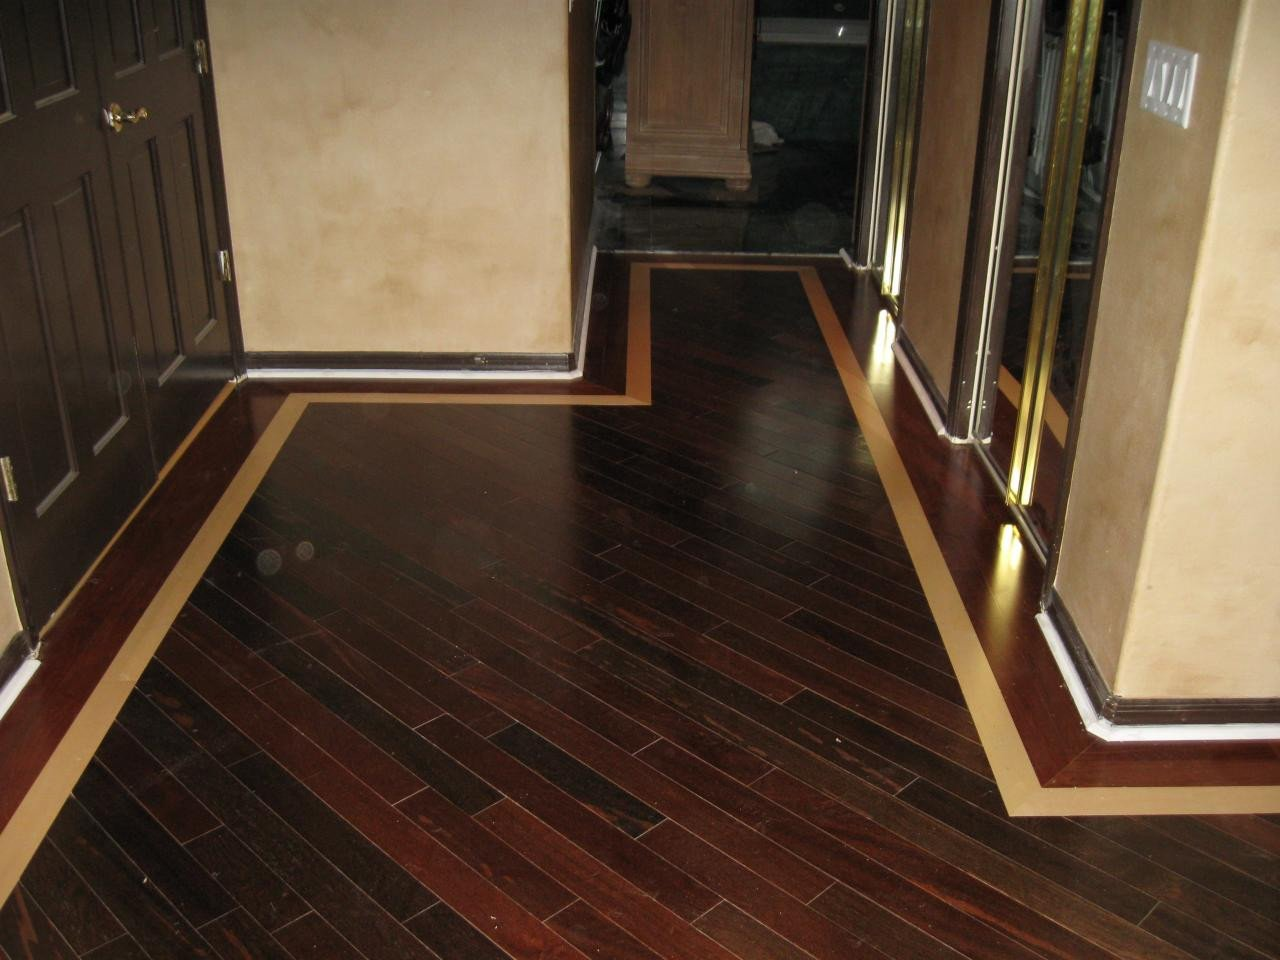 Floor and Decor Wood Flooring New top Notch Floor Decor Inc Wood Flooring top Notch Floor Decor Inc is Proud to Have Its Owner